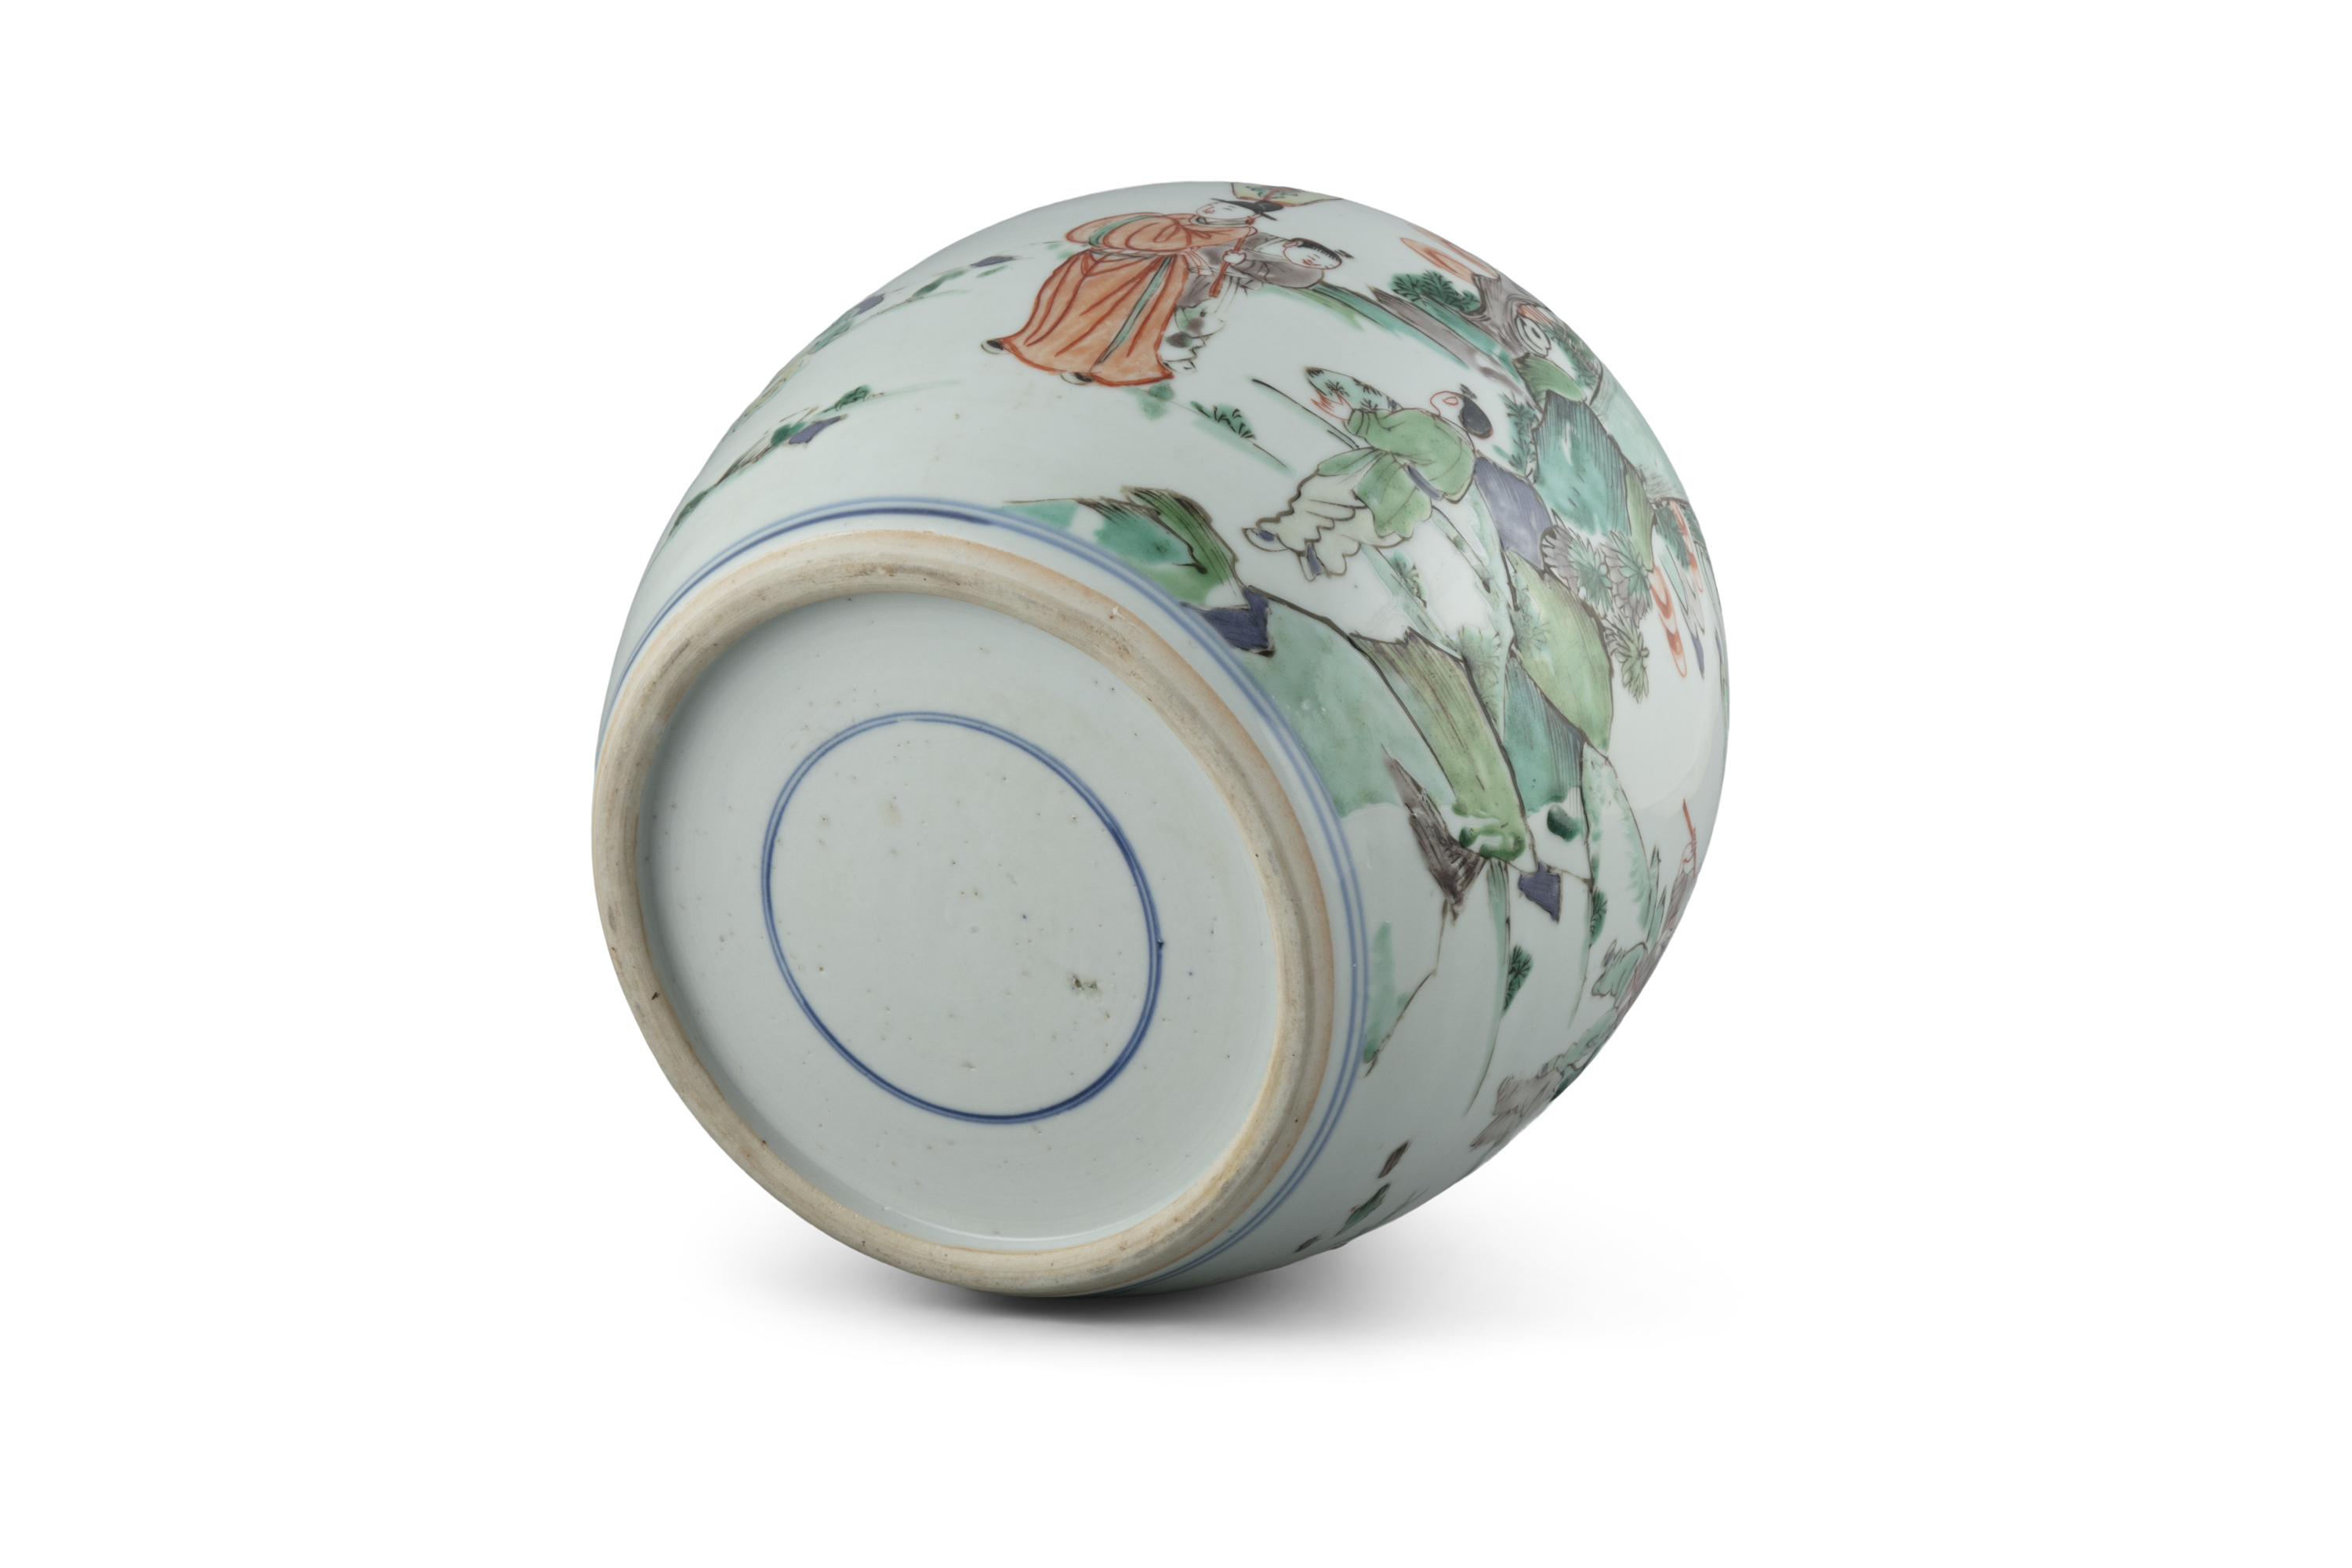 A FAMILLE VERTE 'BOY AND QILIN' PORCELAIN GINGER JAR China, Qing Dynasty, Kangxi period Adorned in - Image 20 of 20